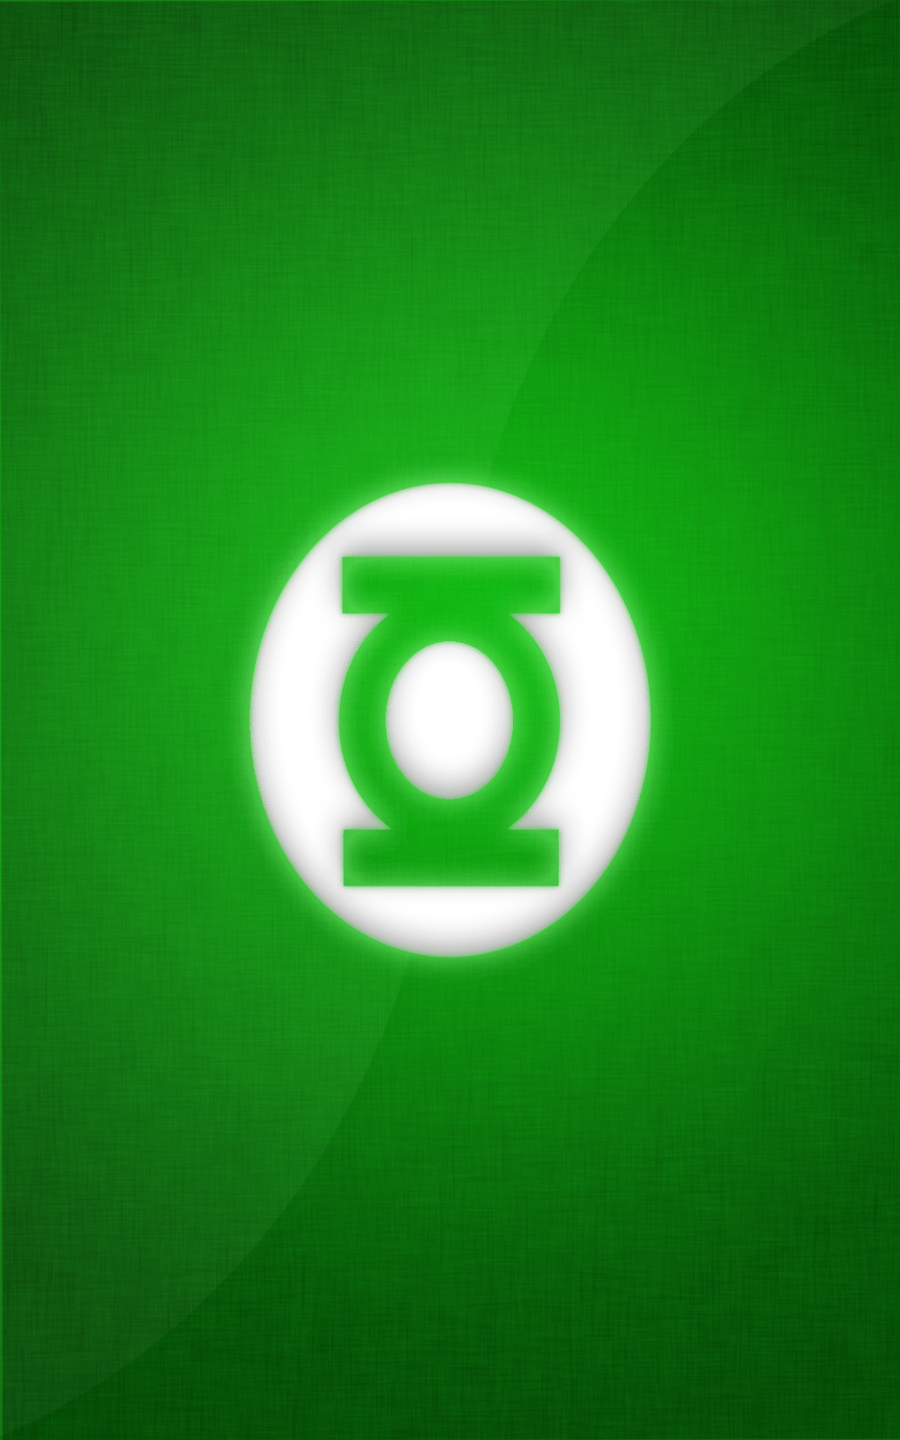 900x1440 50+ Green Lantern Desktop Wallpapers - Download at WallpaperBro